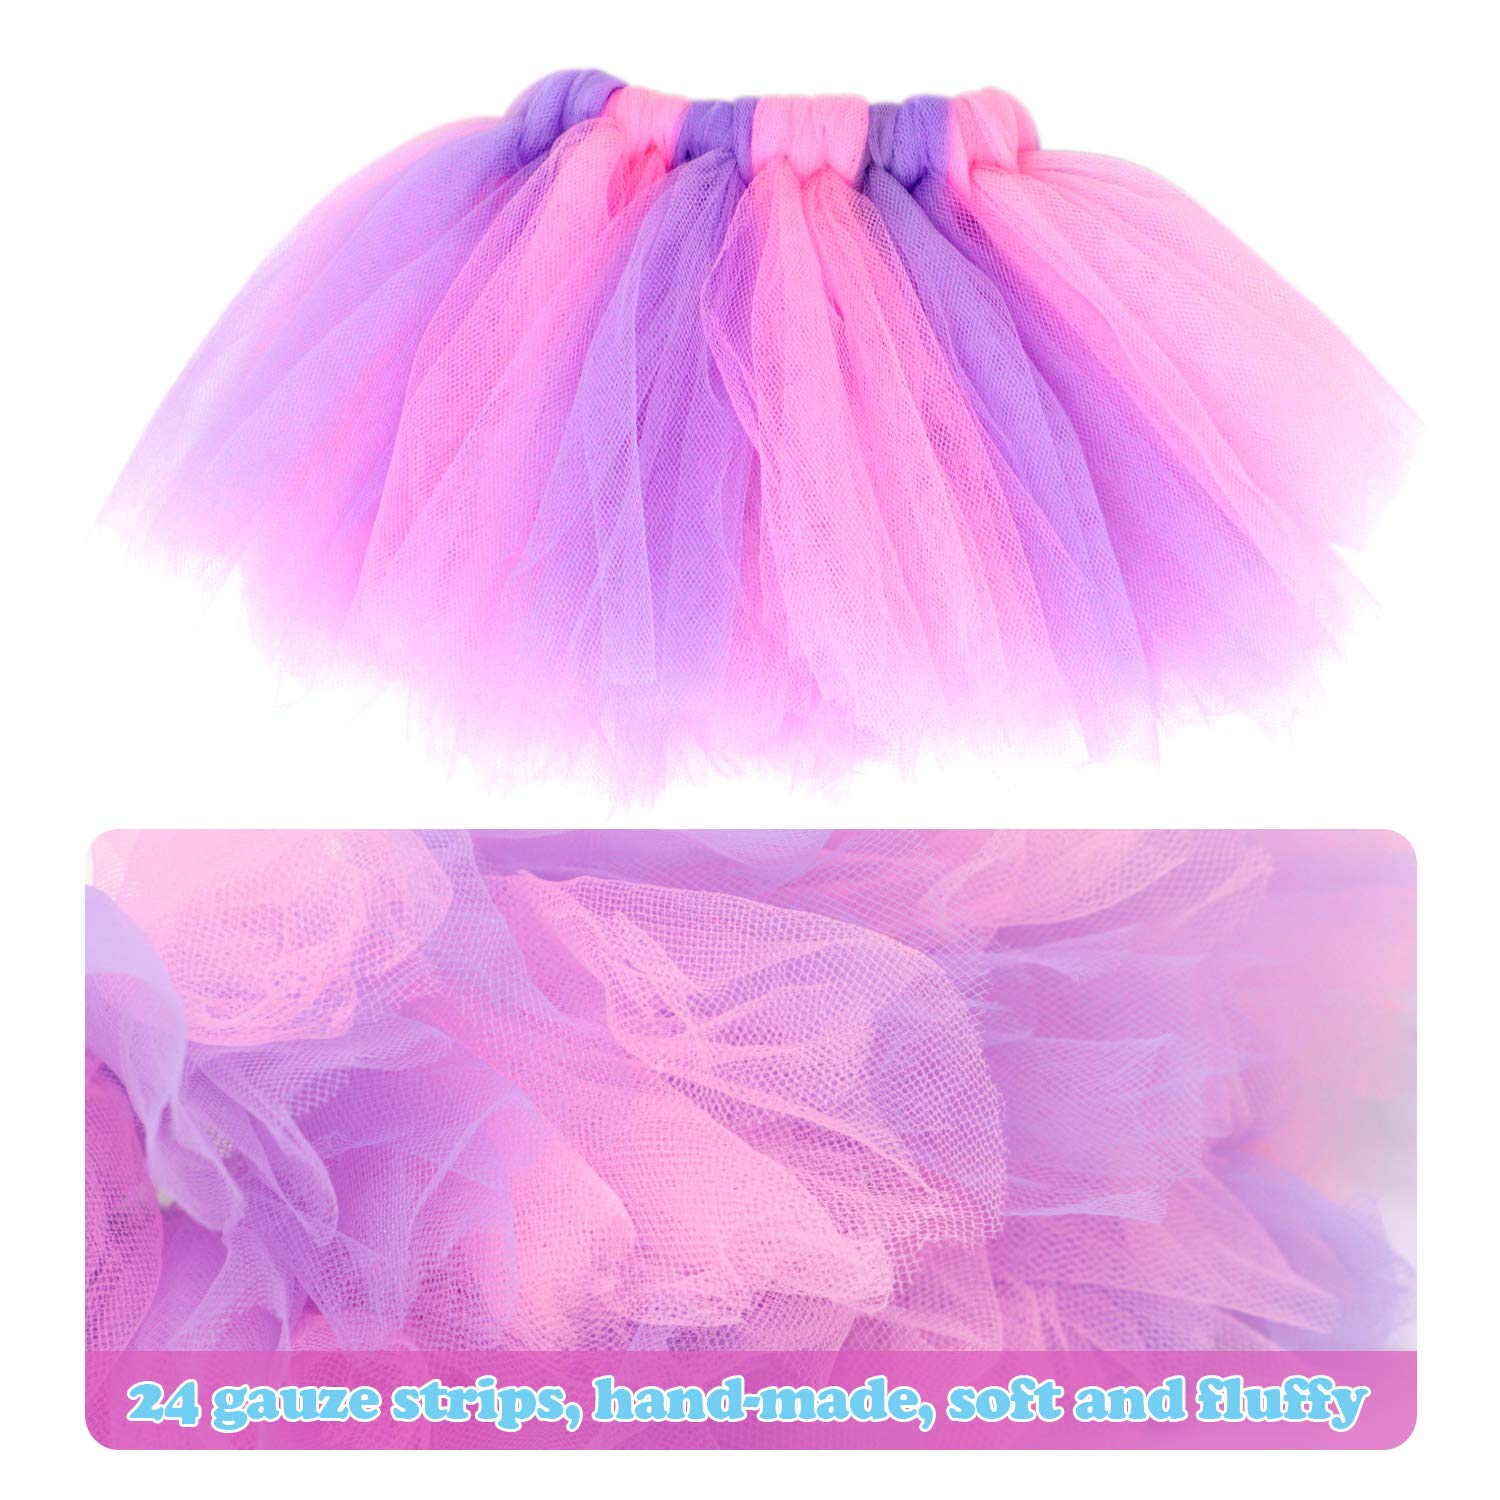 A ANNTOY 18 inch Doll Clothes 3 Pcs Headband Bodysuit Tutu Skirt 18-inch Doll Accessories for American Girl Doll Our Generation Dolls Journey Girl Dolls